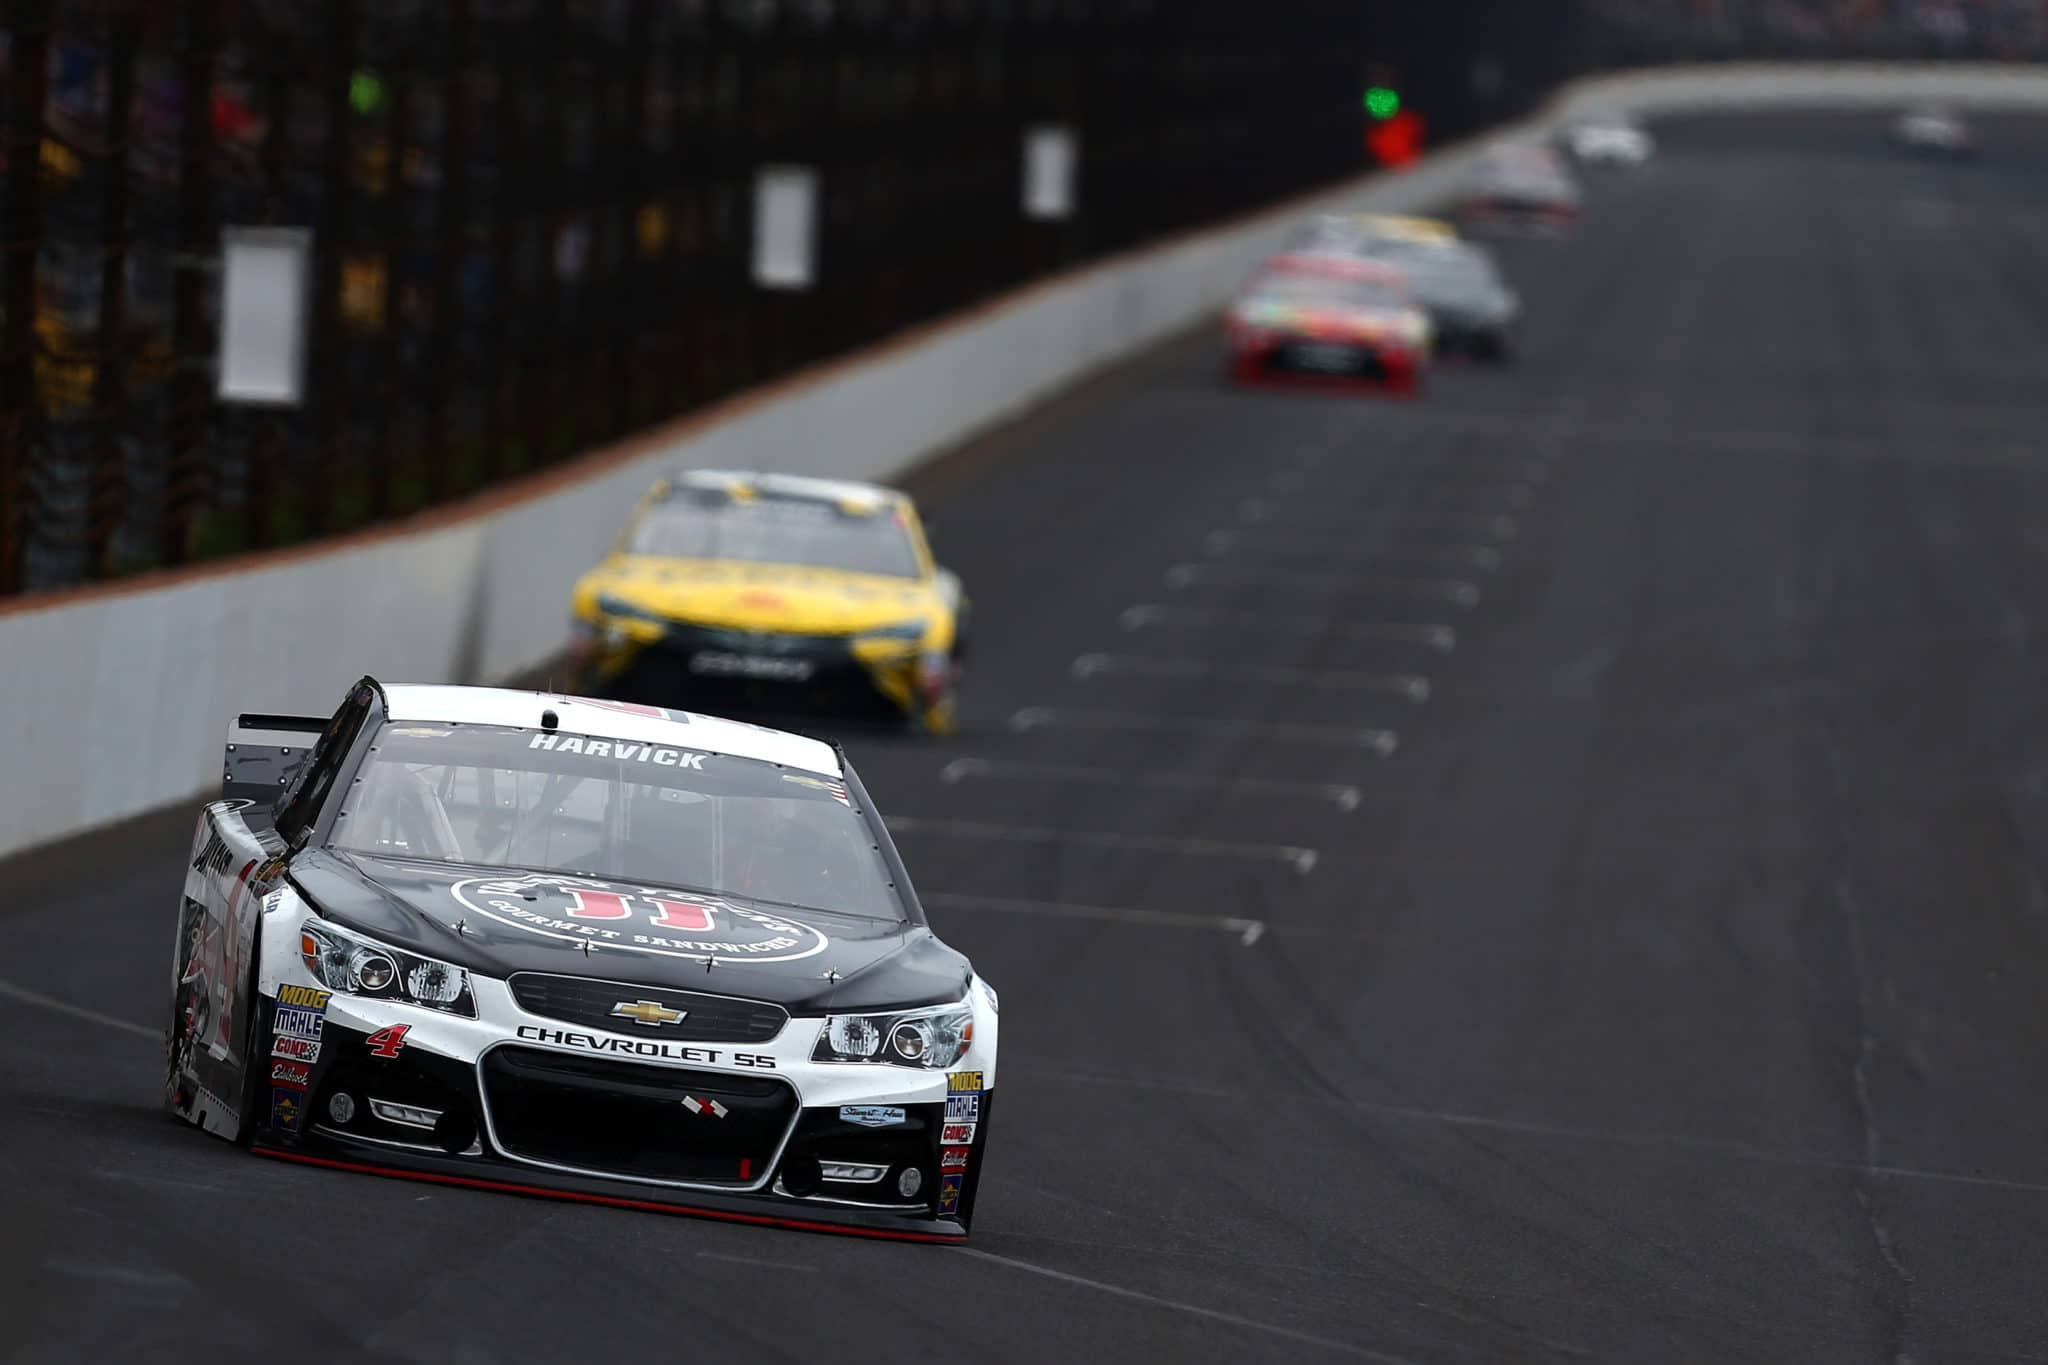 Kevin Harvick leads a pack of cars in the Jeff Kyle 400 at the Brickyard at Indianapolis Motor Speedway